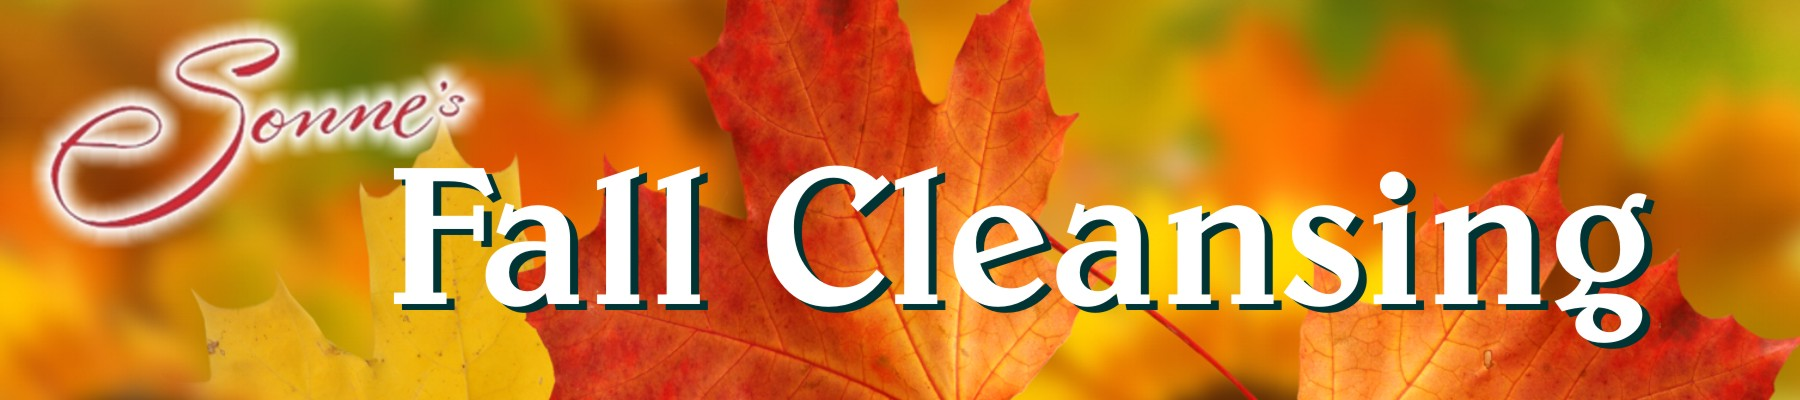 Sonnes Fall Cleansing Banner